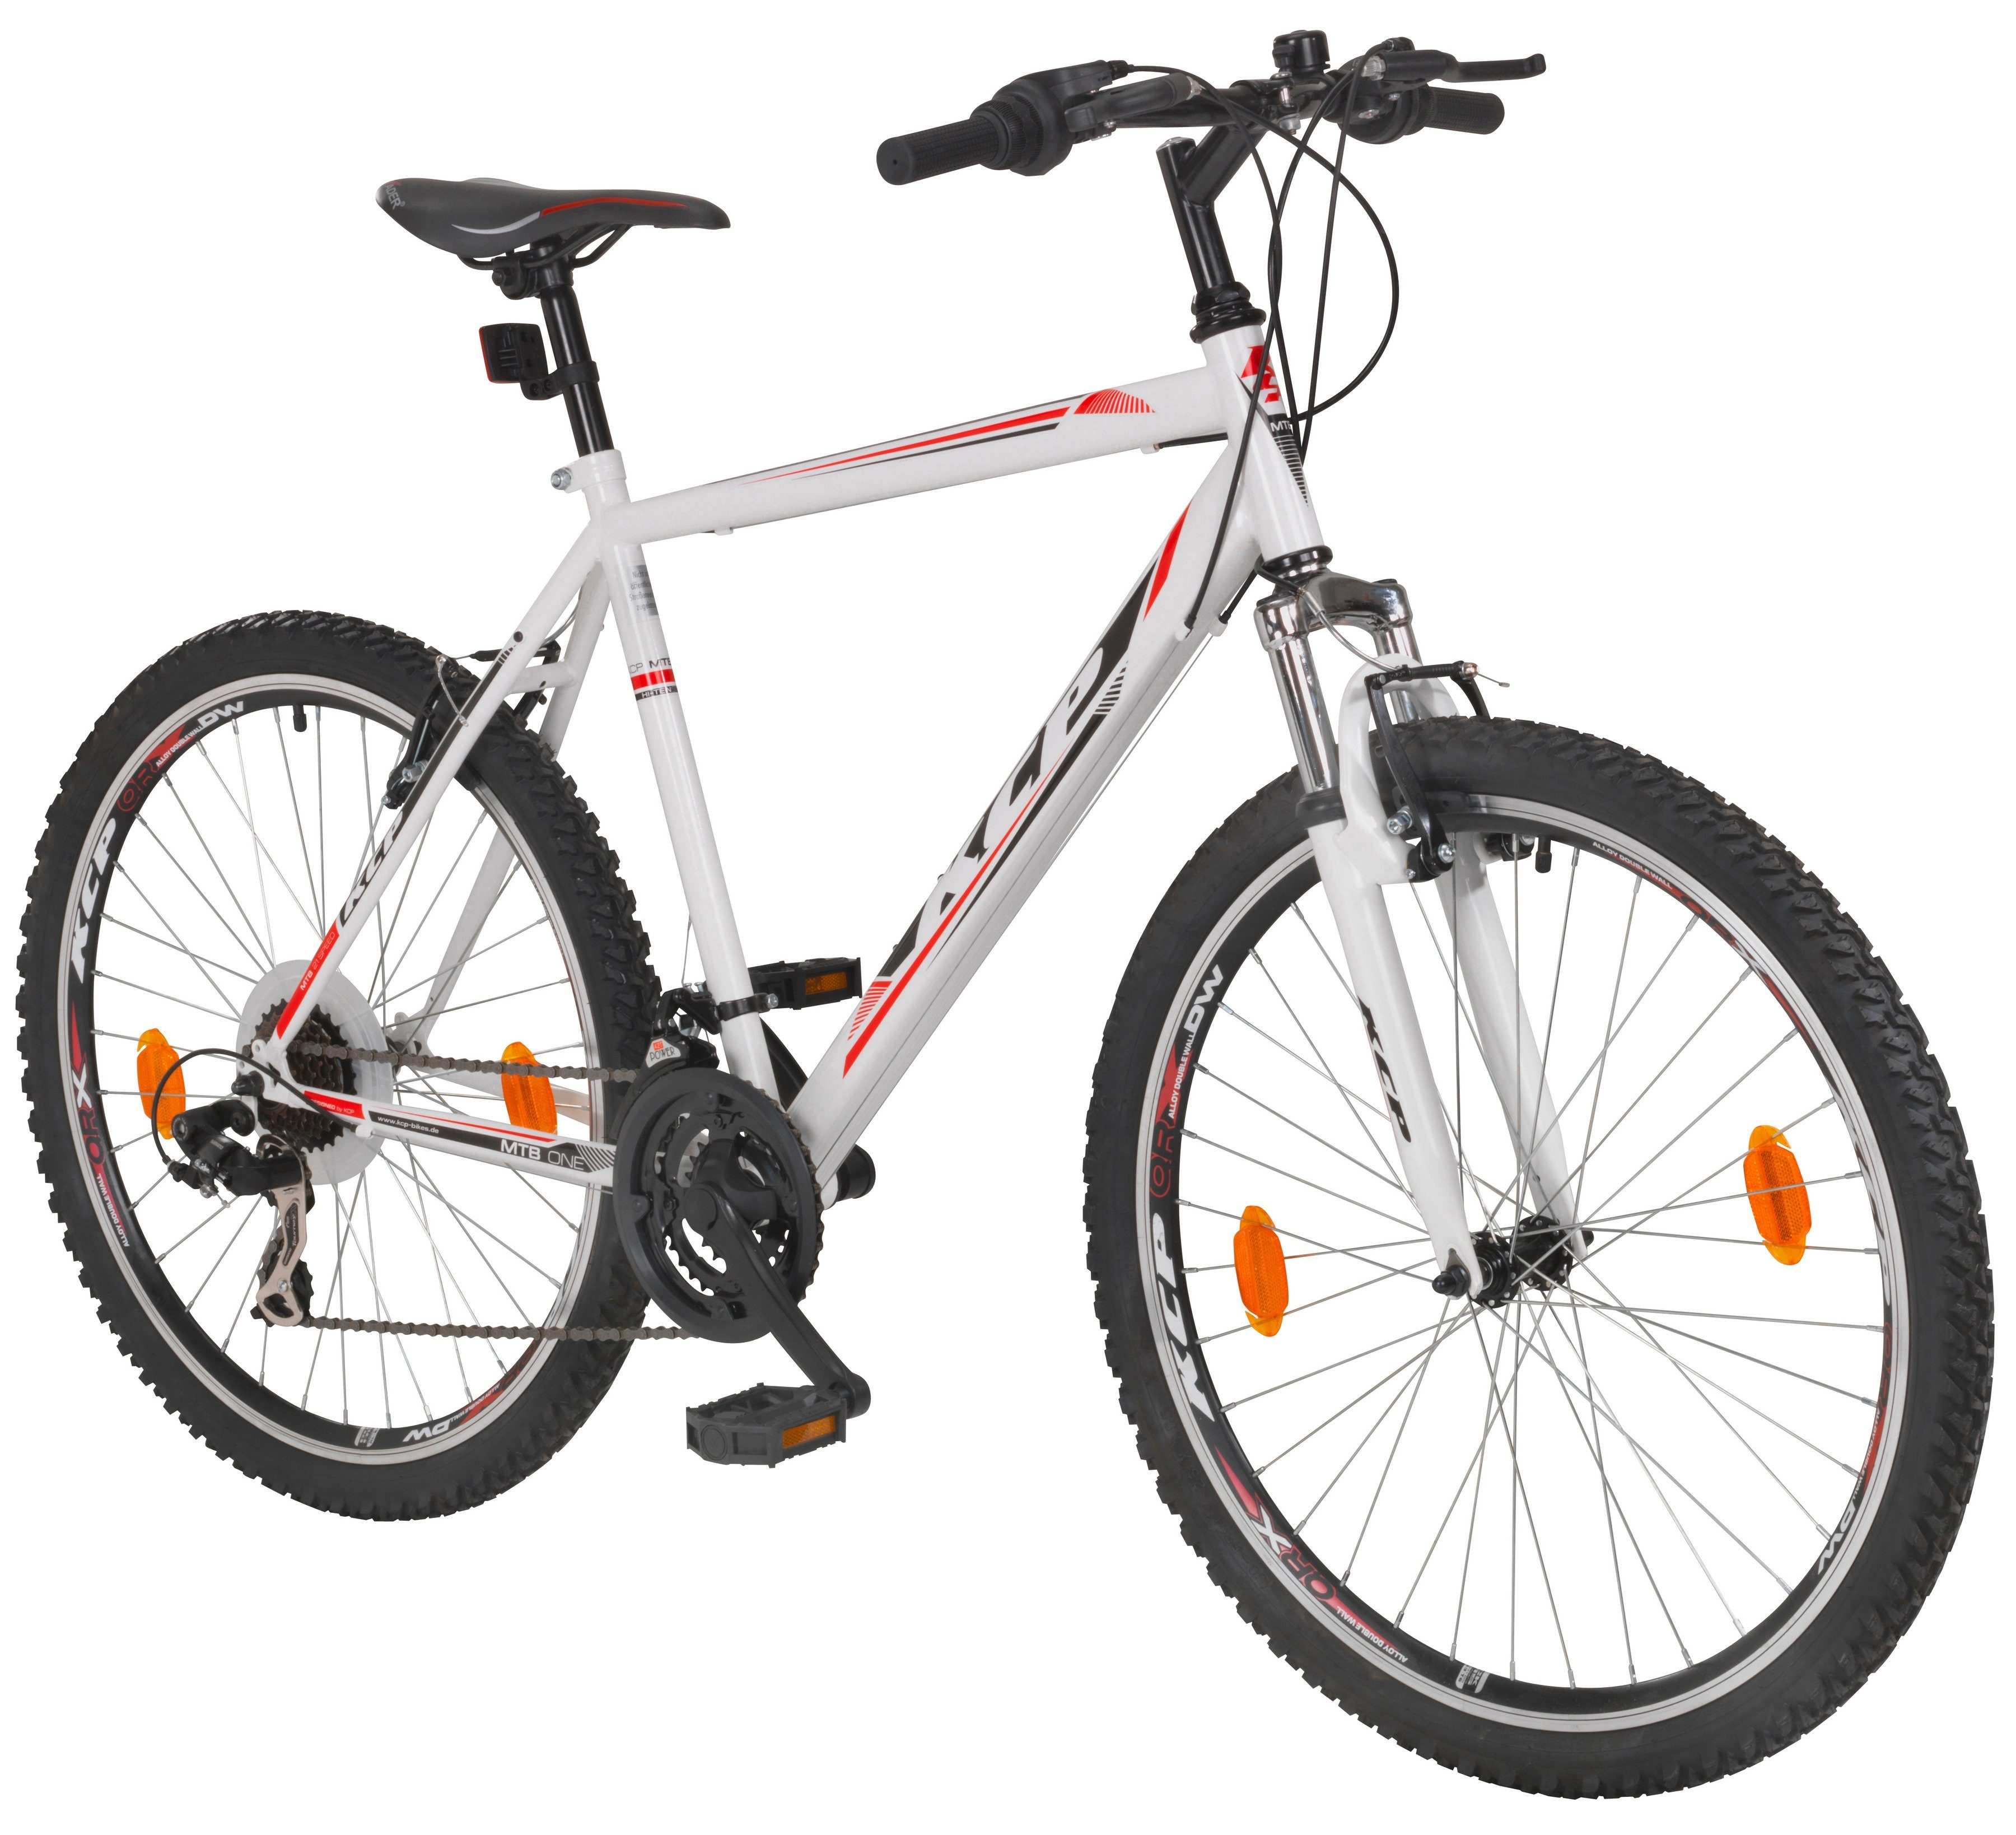 KCP Mountainbike »ONE«, 26 Zoll, 21 Gang, V-Bremsen